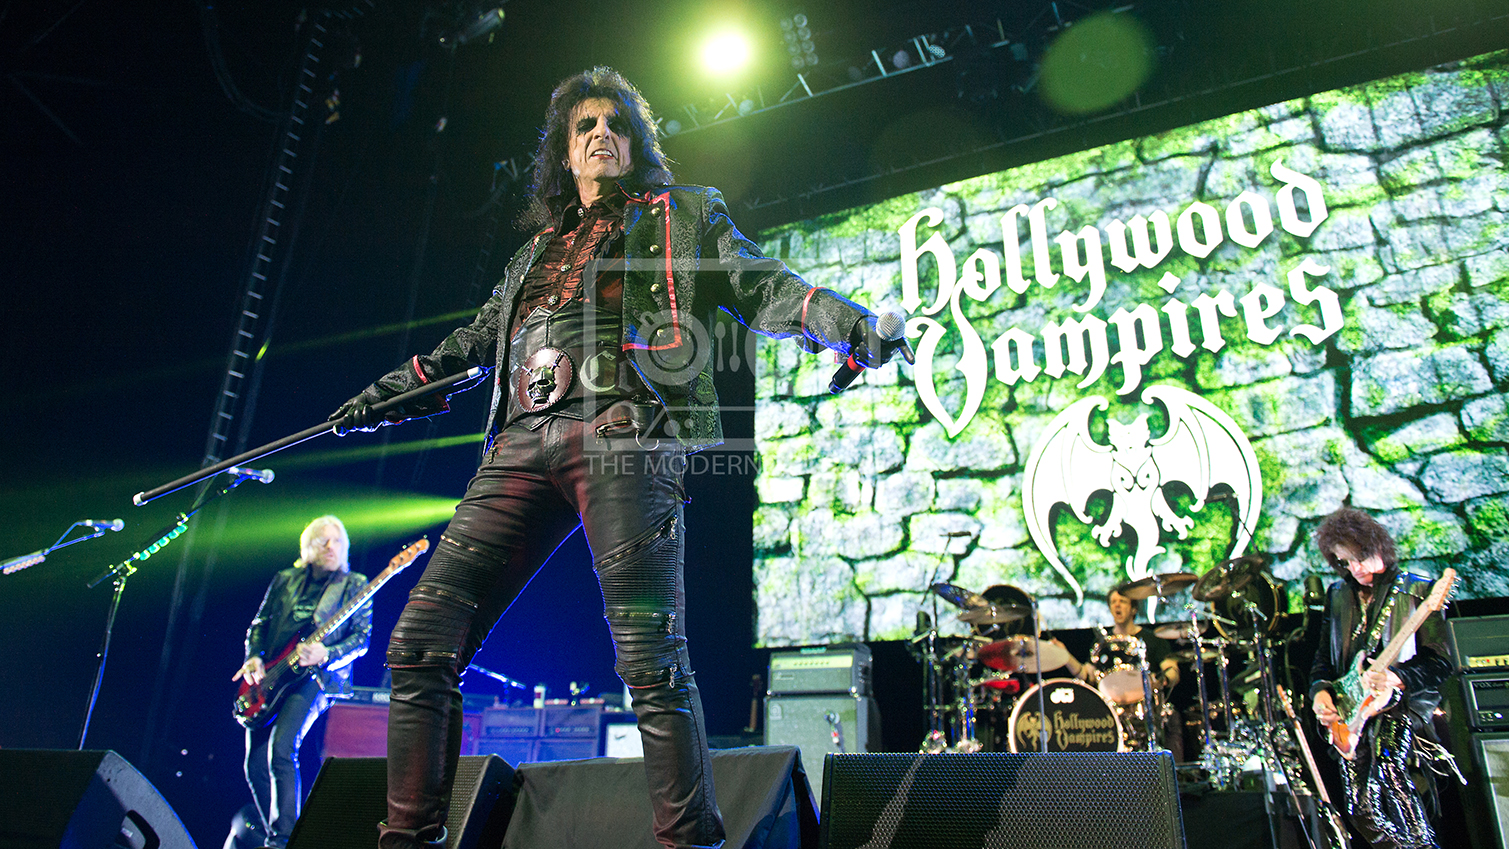 The Hollywood Vampires  At The SSE Hydro, Glasgow19-06-201802.jpg